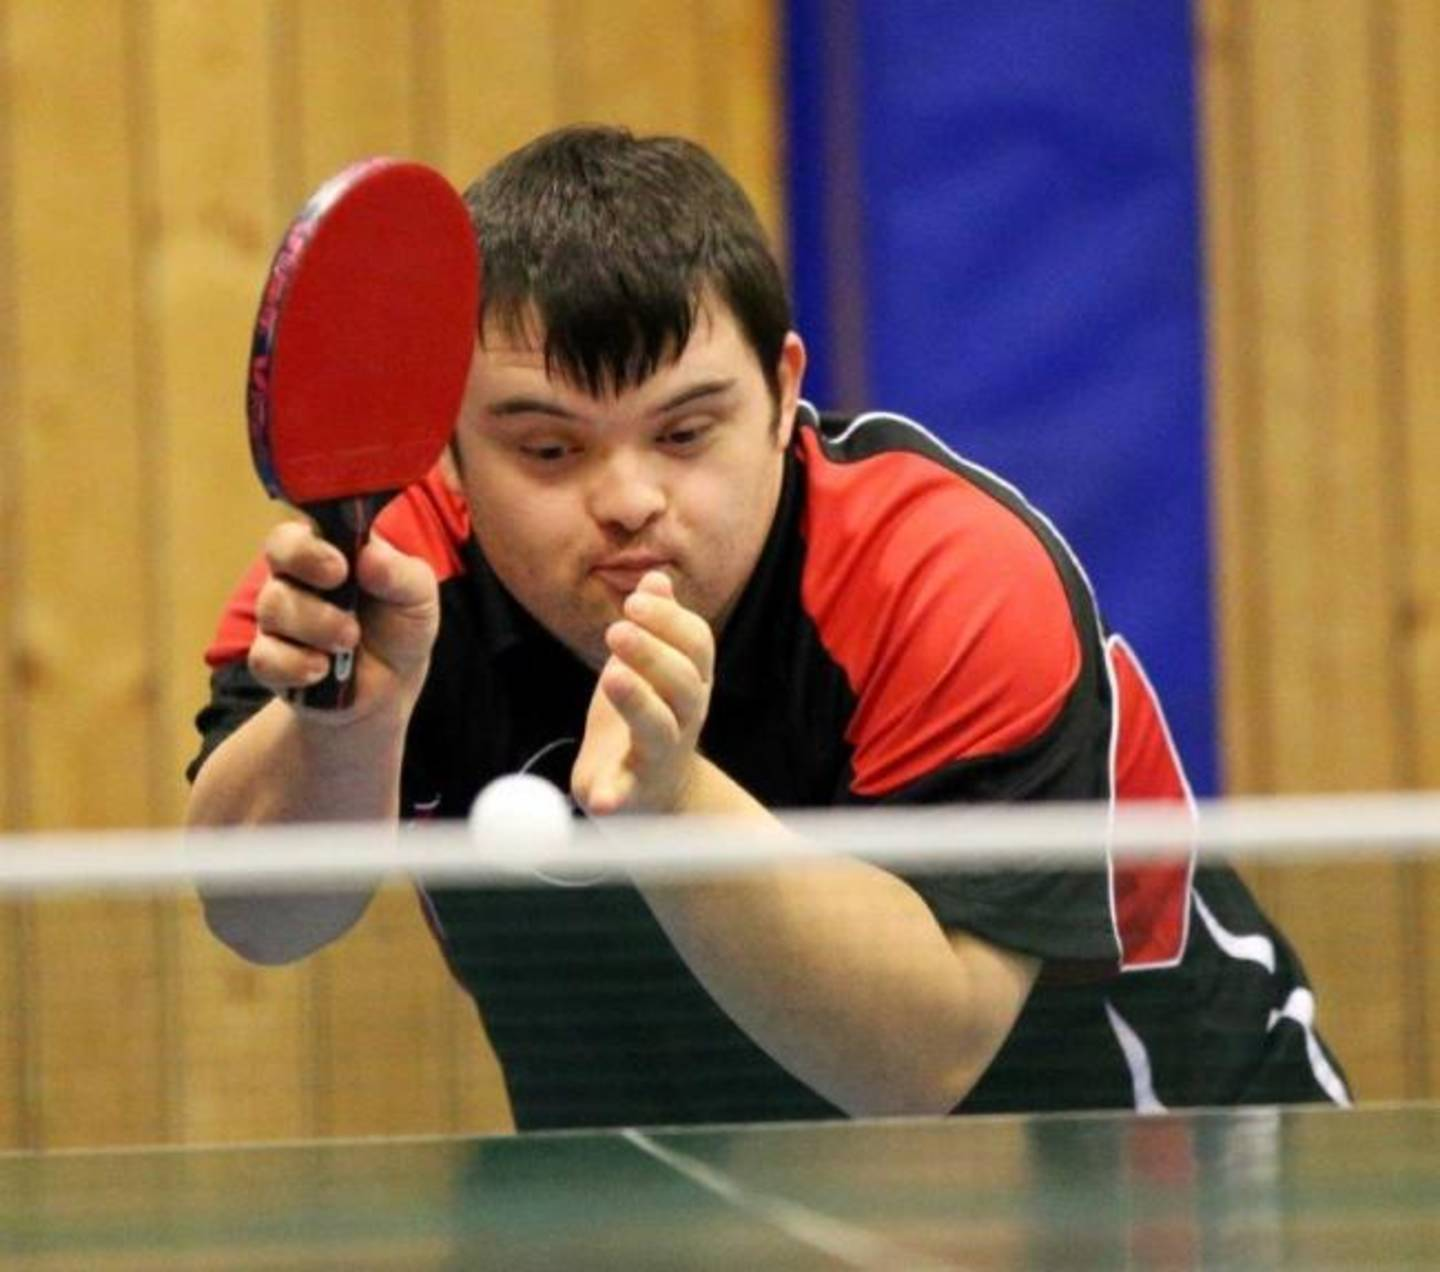 Harry Fairchild, the world's first qualified table tennis coach with Down's syndrome